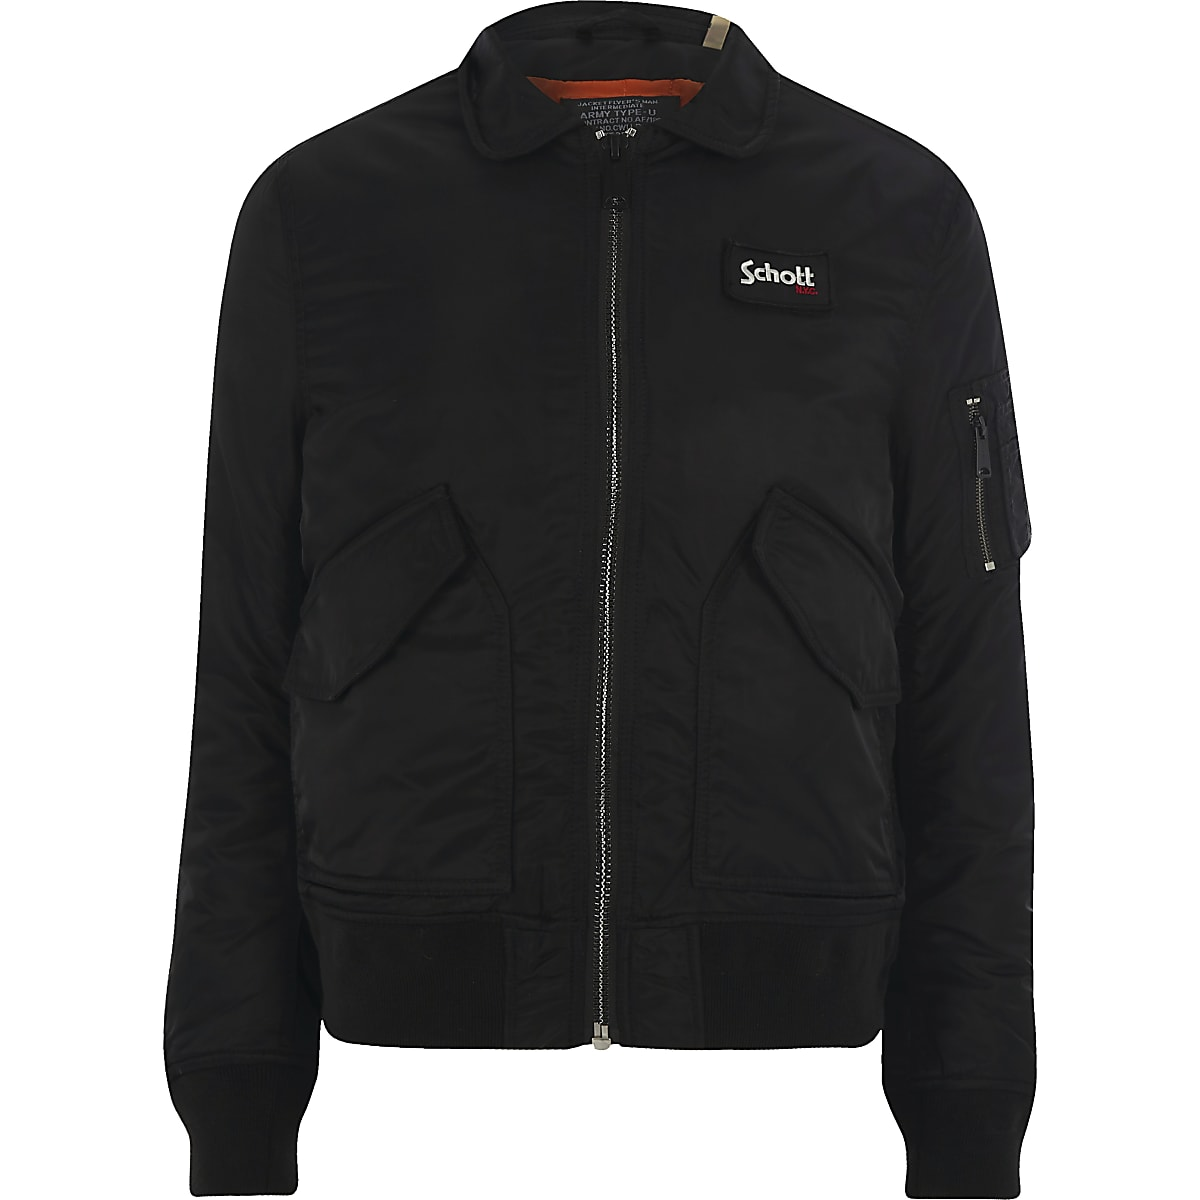 Schott black collar jacket